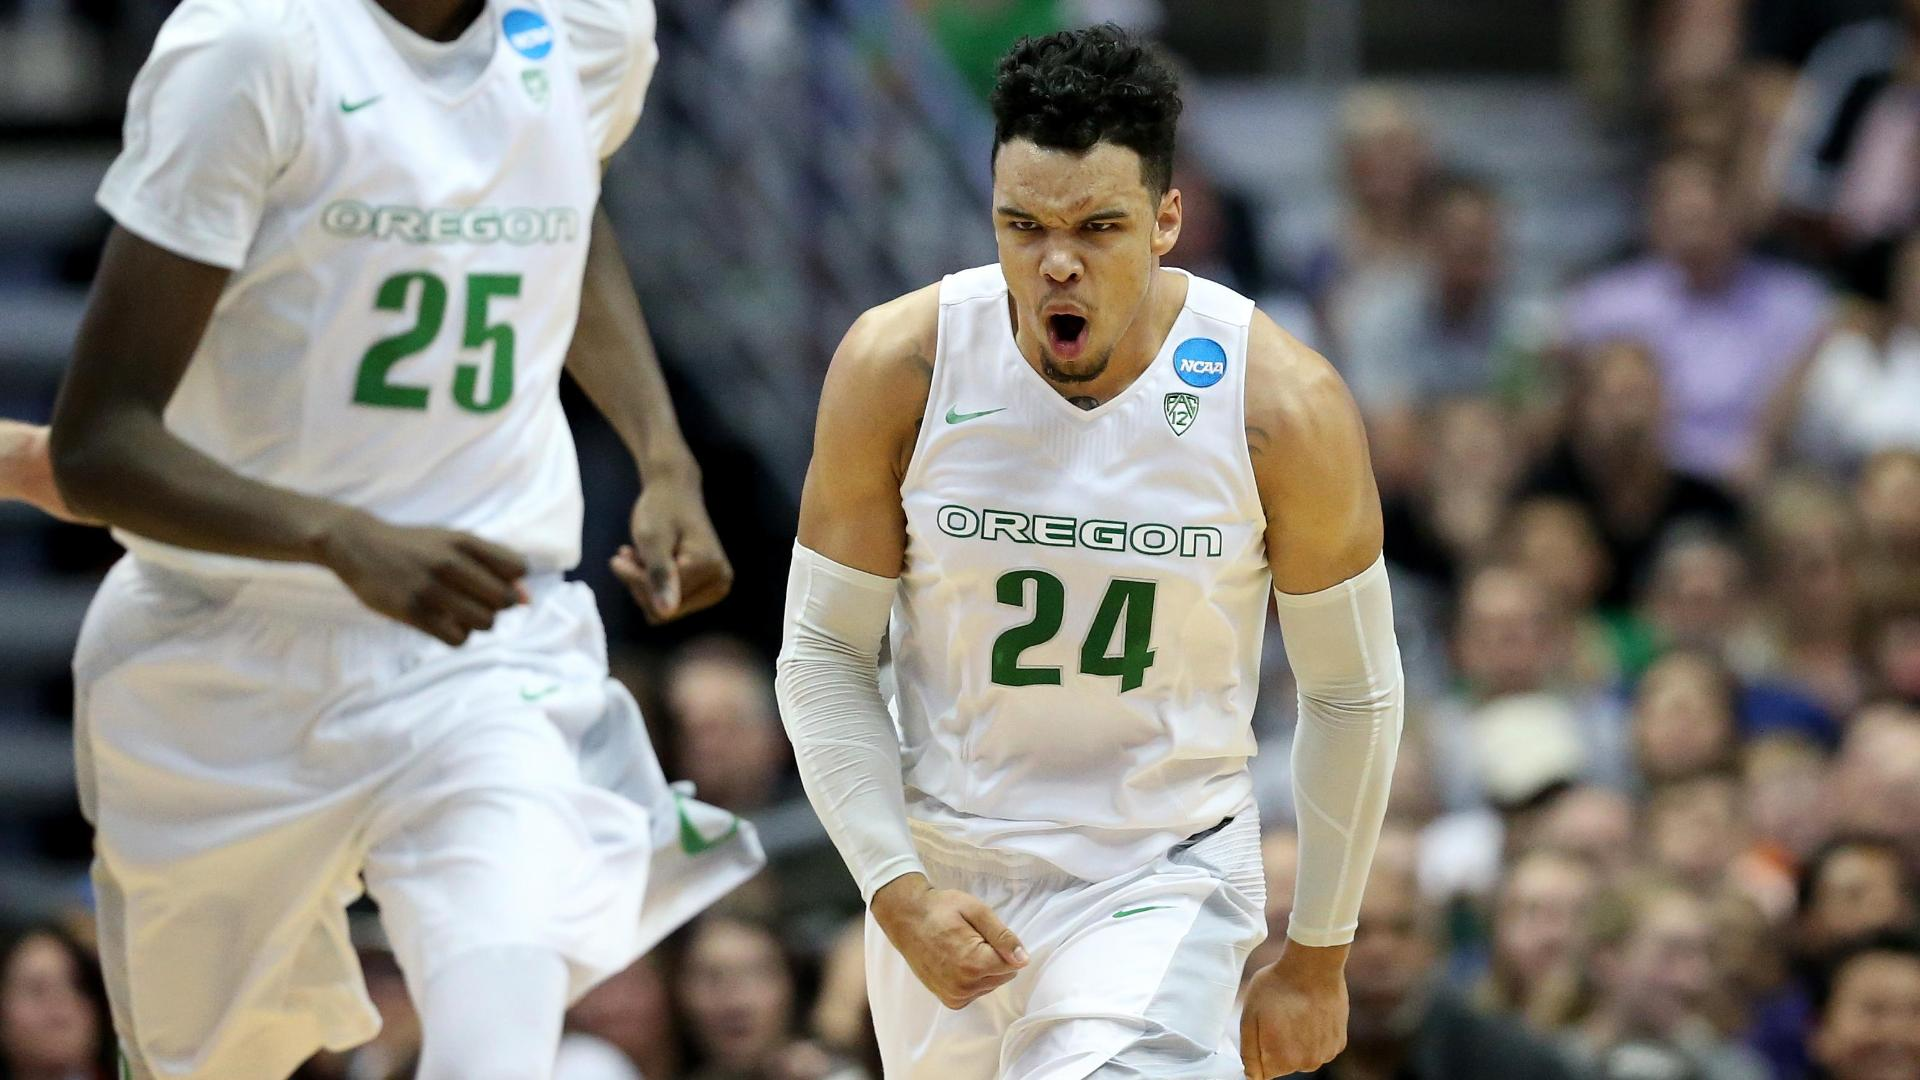 No repeat for Duke, Oregon to Elite Eight